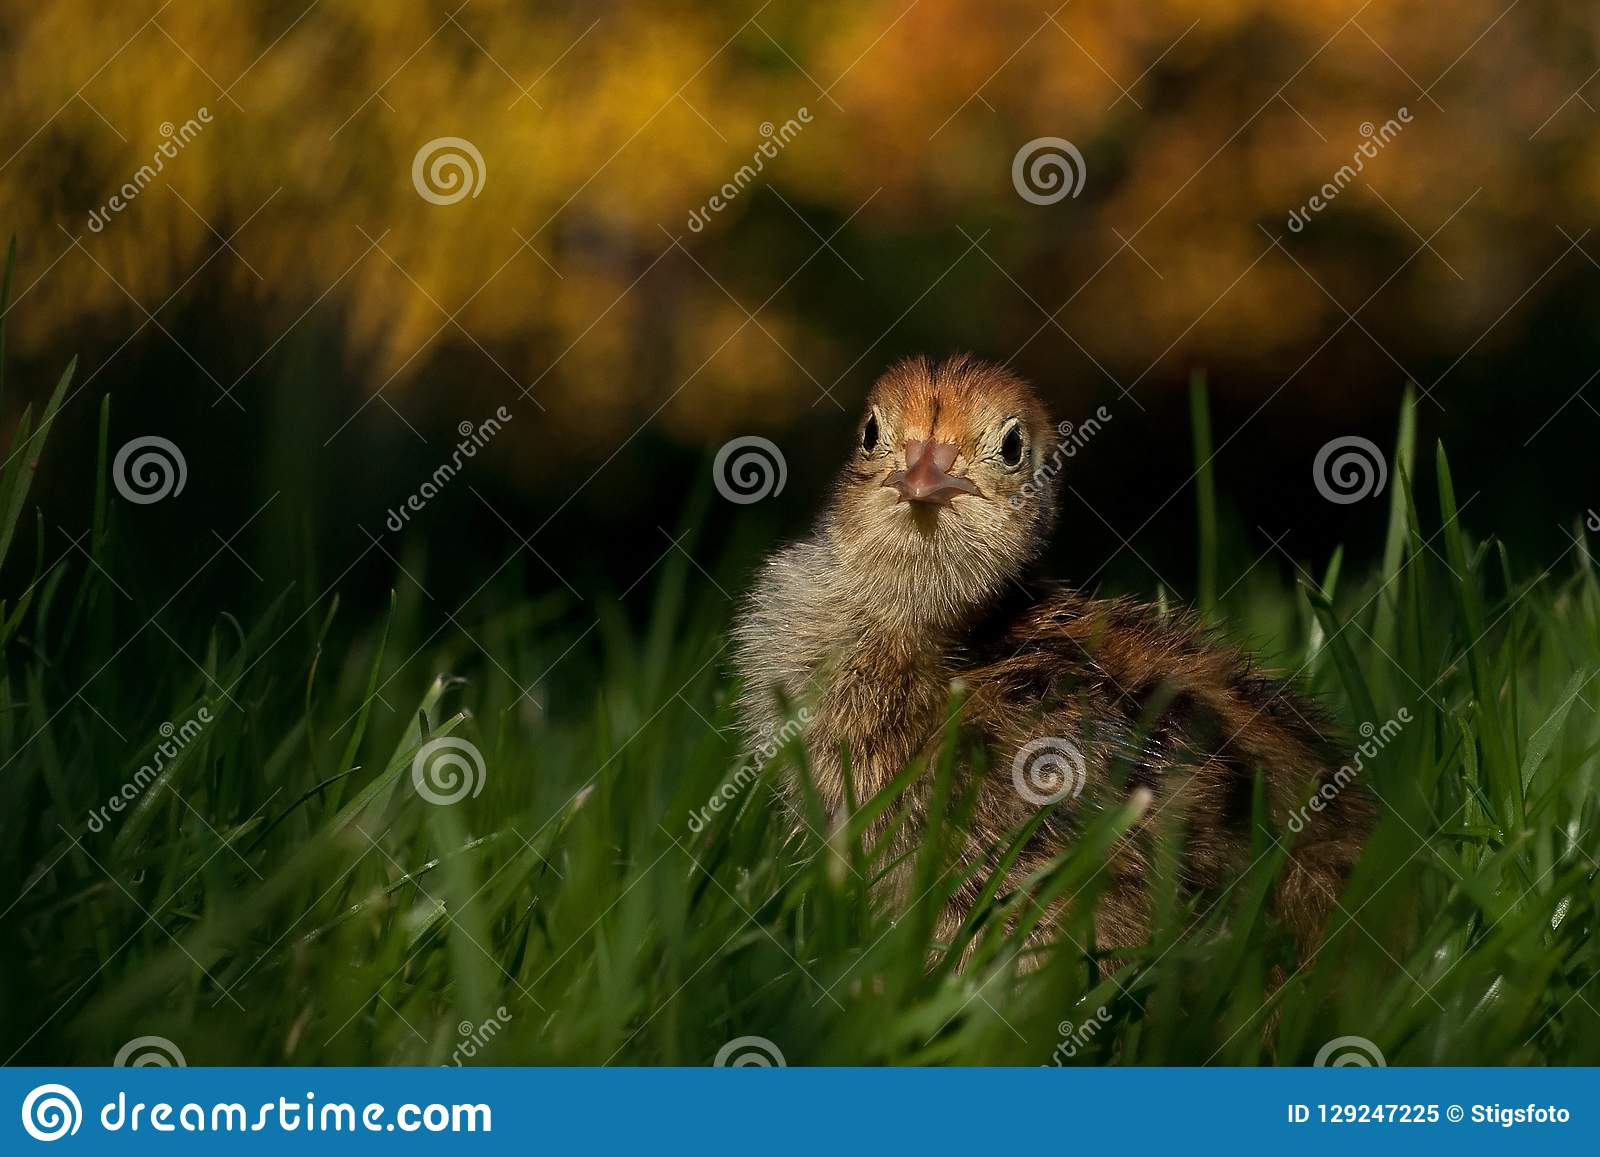 Four days old quail, Coturnix japonica.....photographed in nature